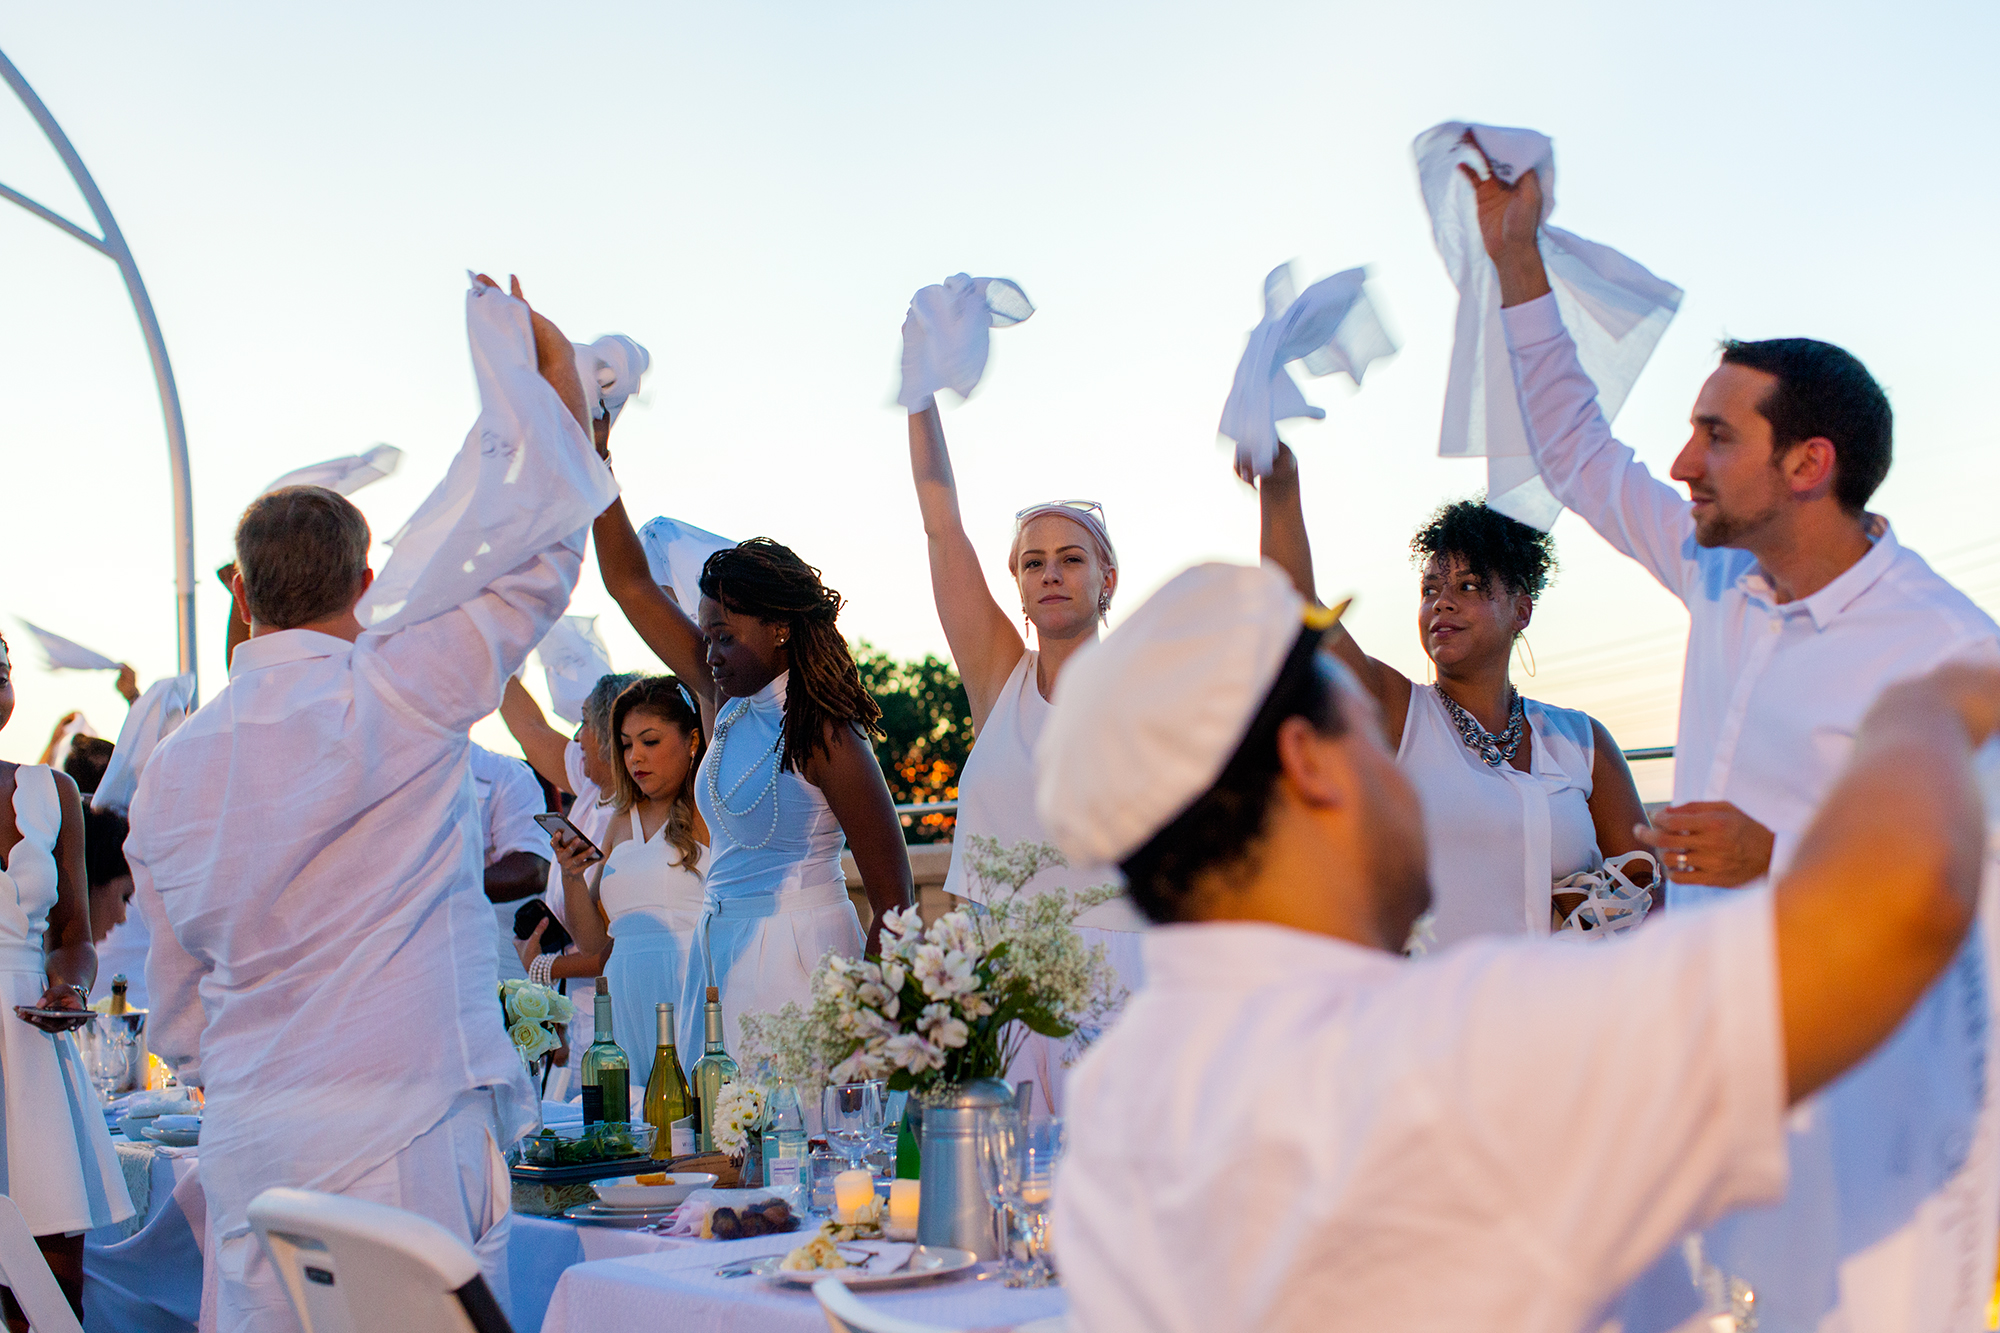 The napkin wave signals the official start of the Diner En Blanc